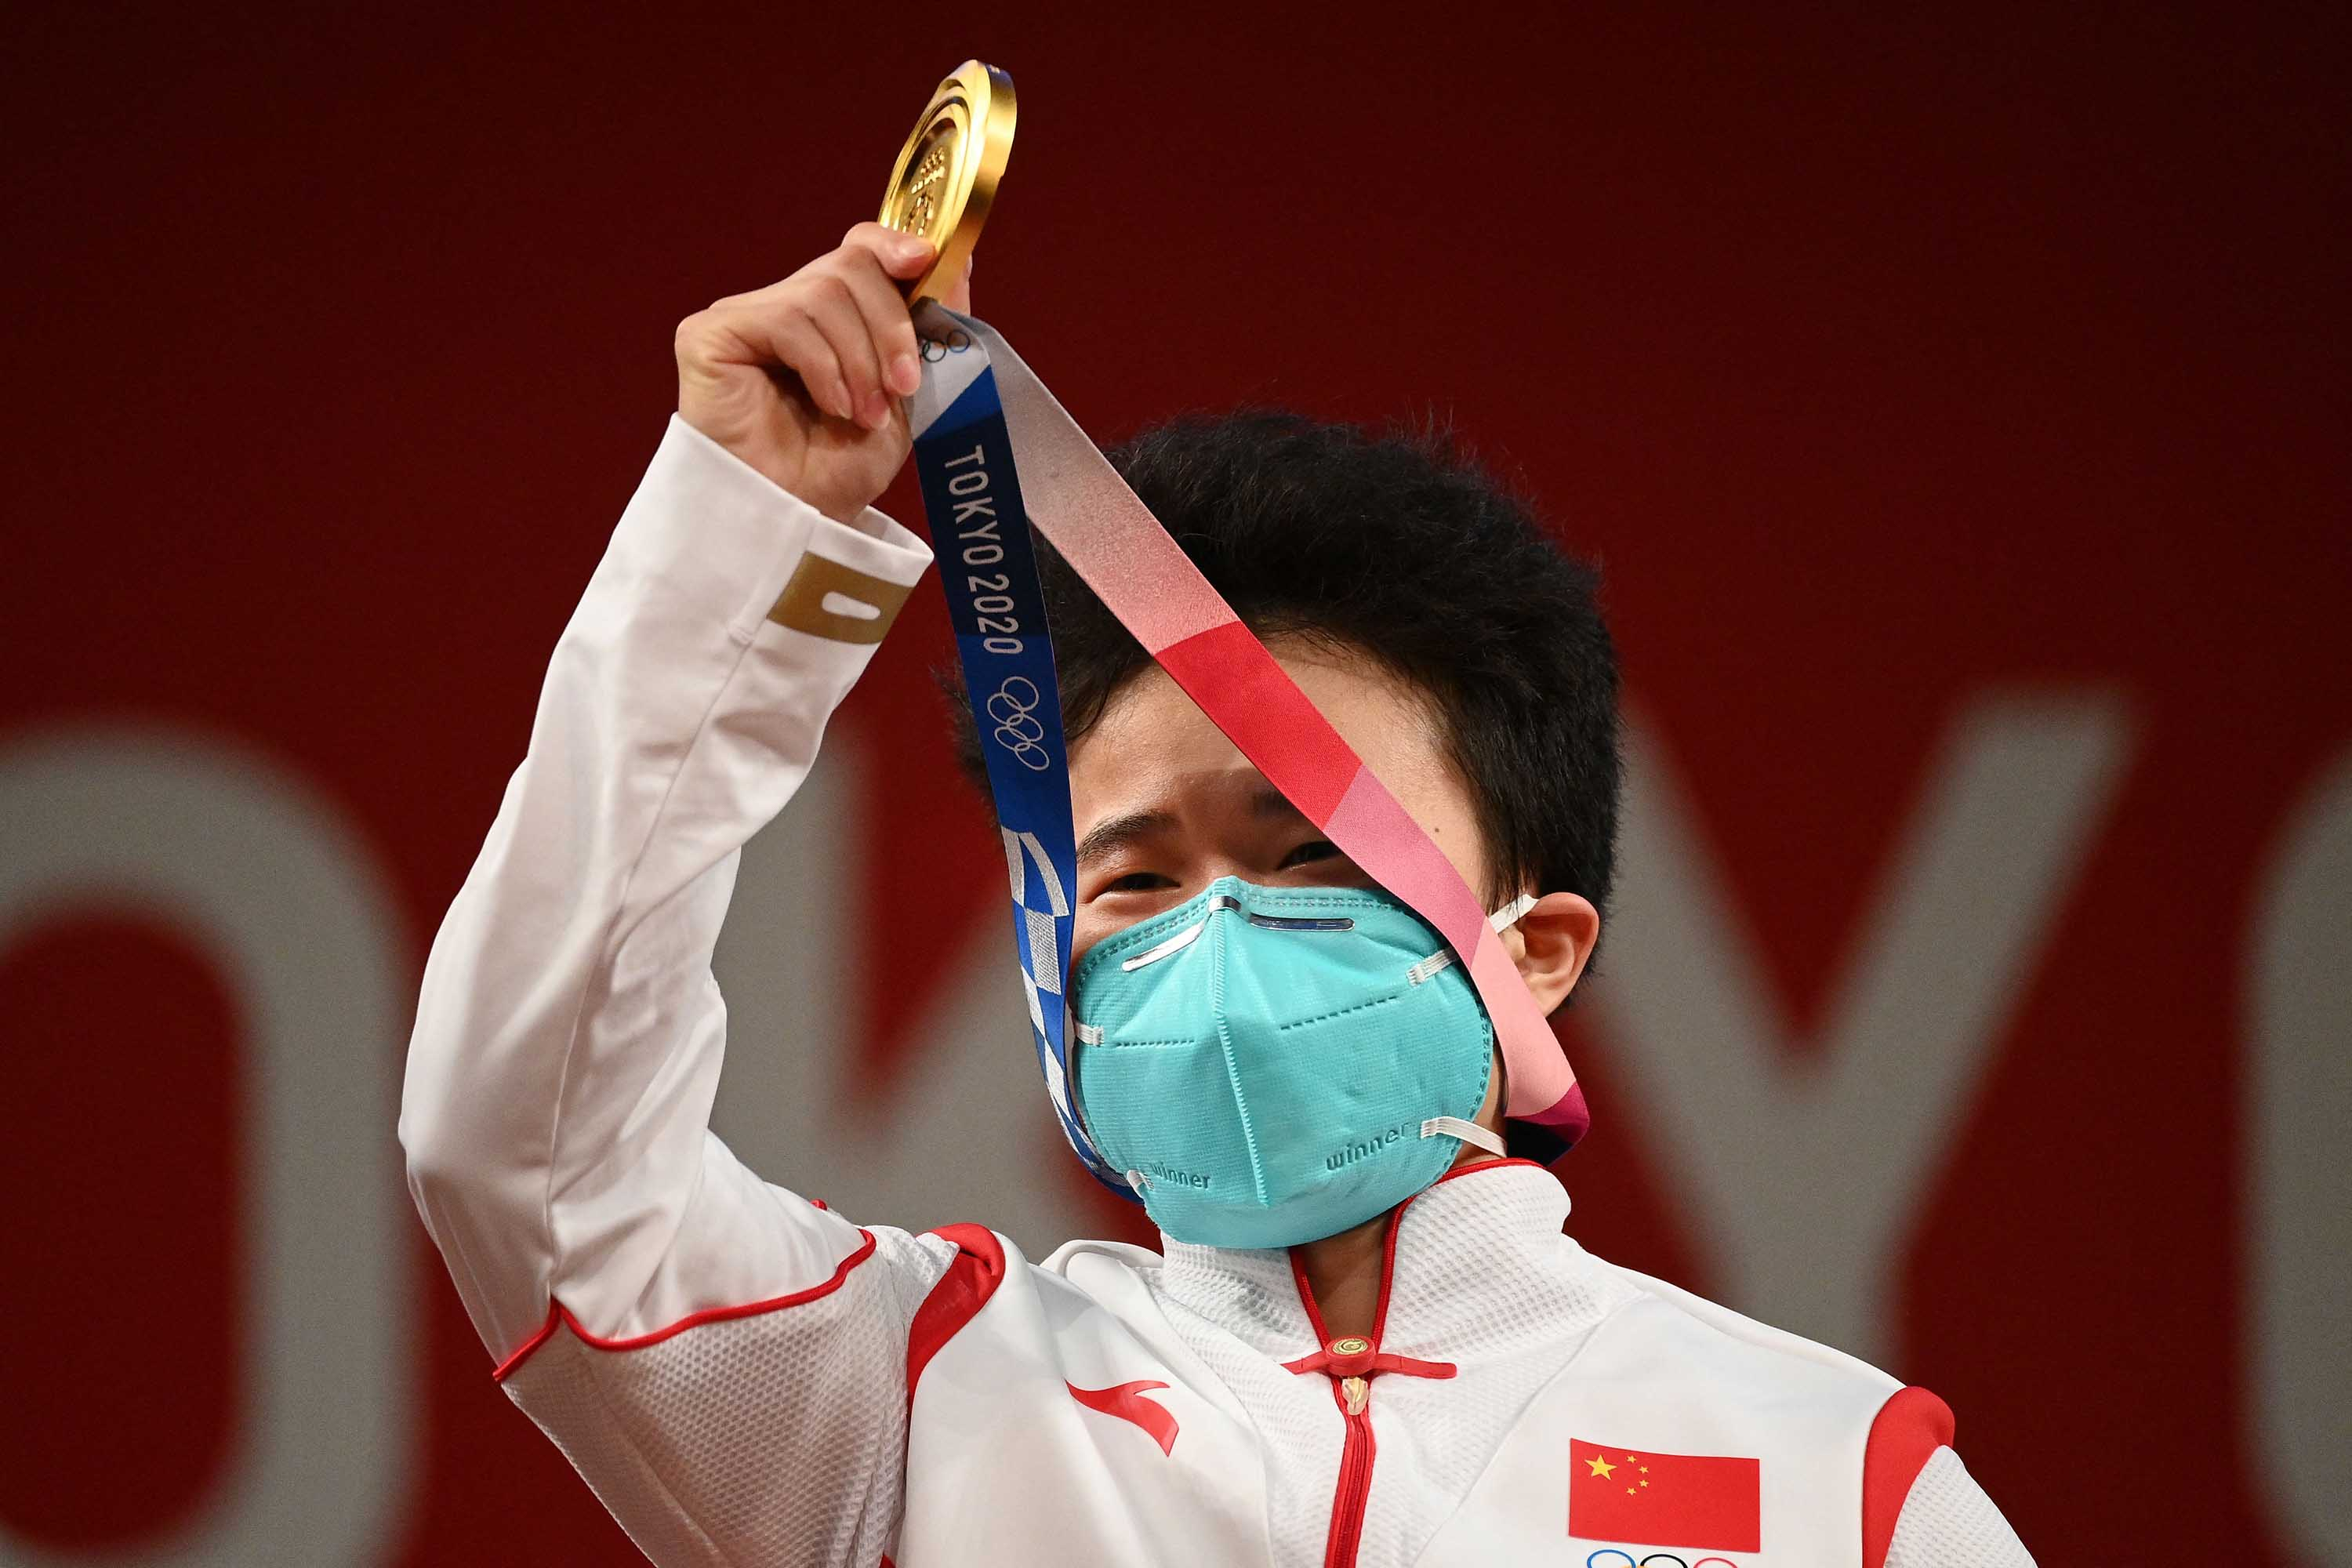 China's Hou Zhihui stands on the podium after winning Gold in the women's 49kg weightlifting competition on July 24.